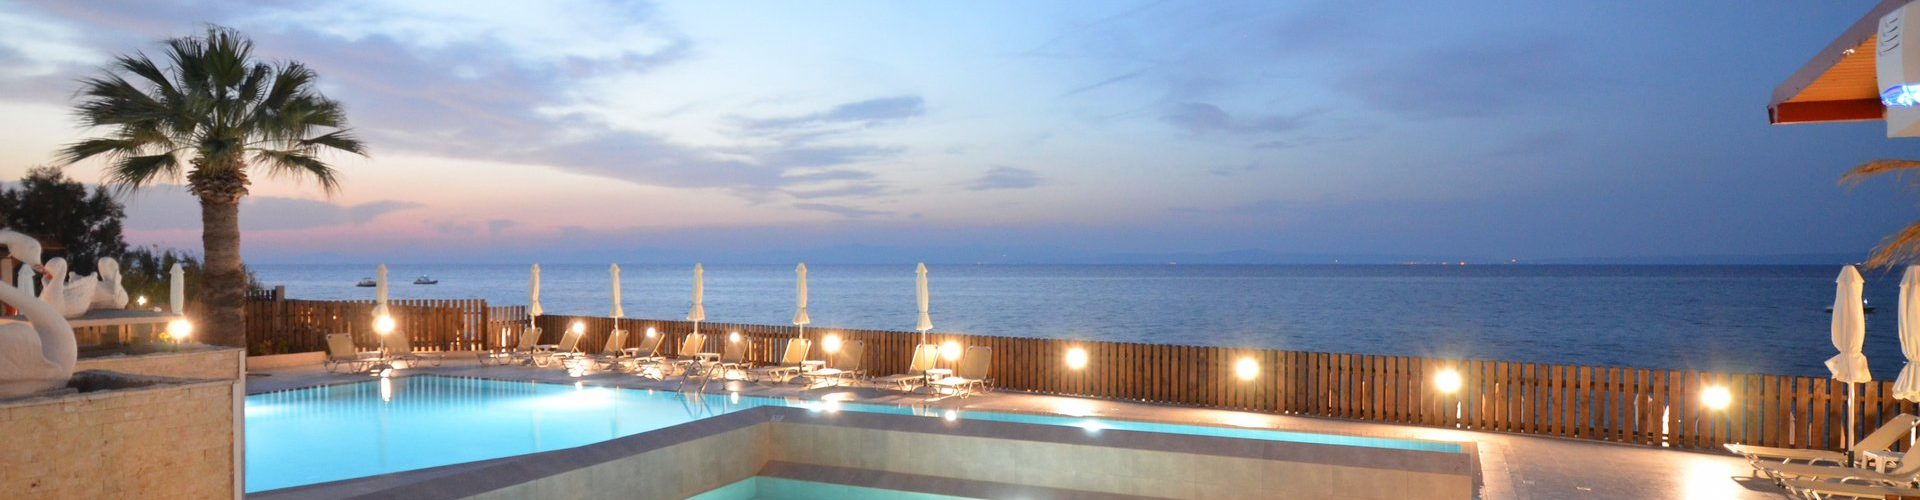 Sousouras Hotel Pool 25